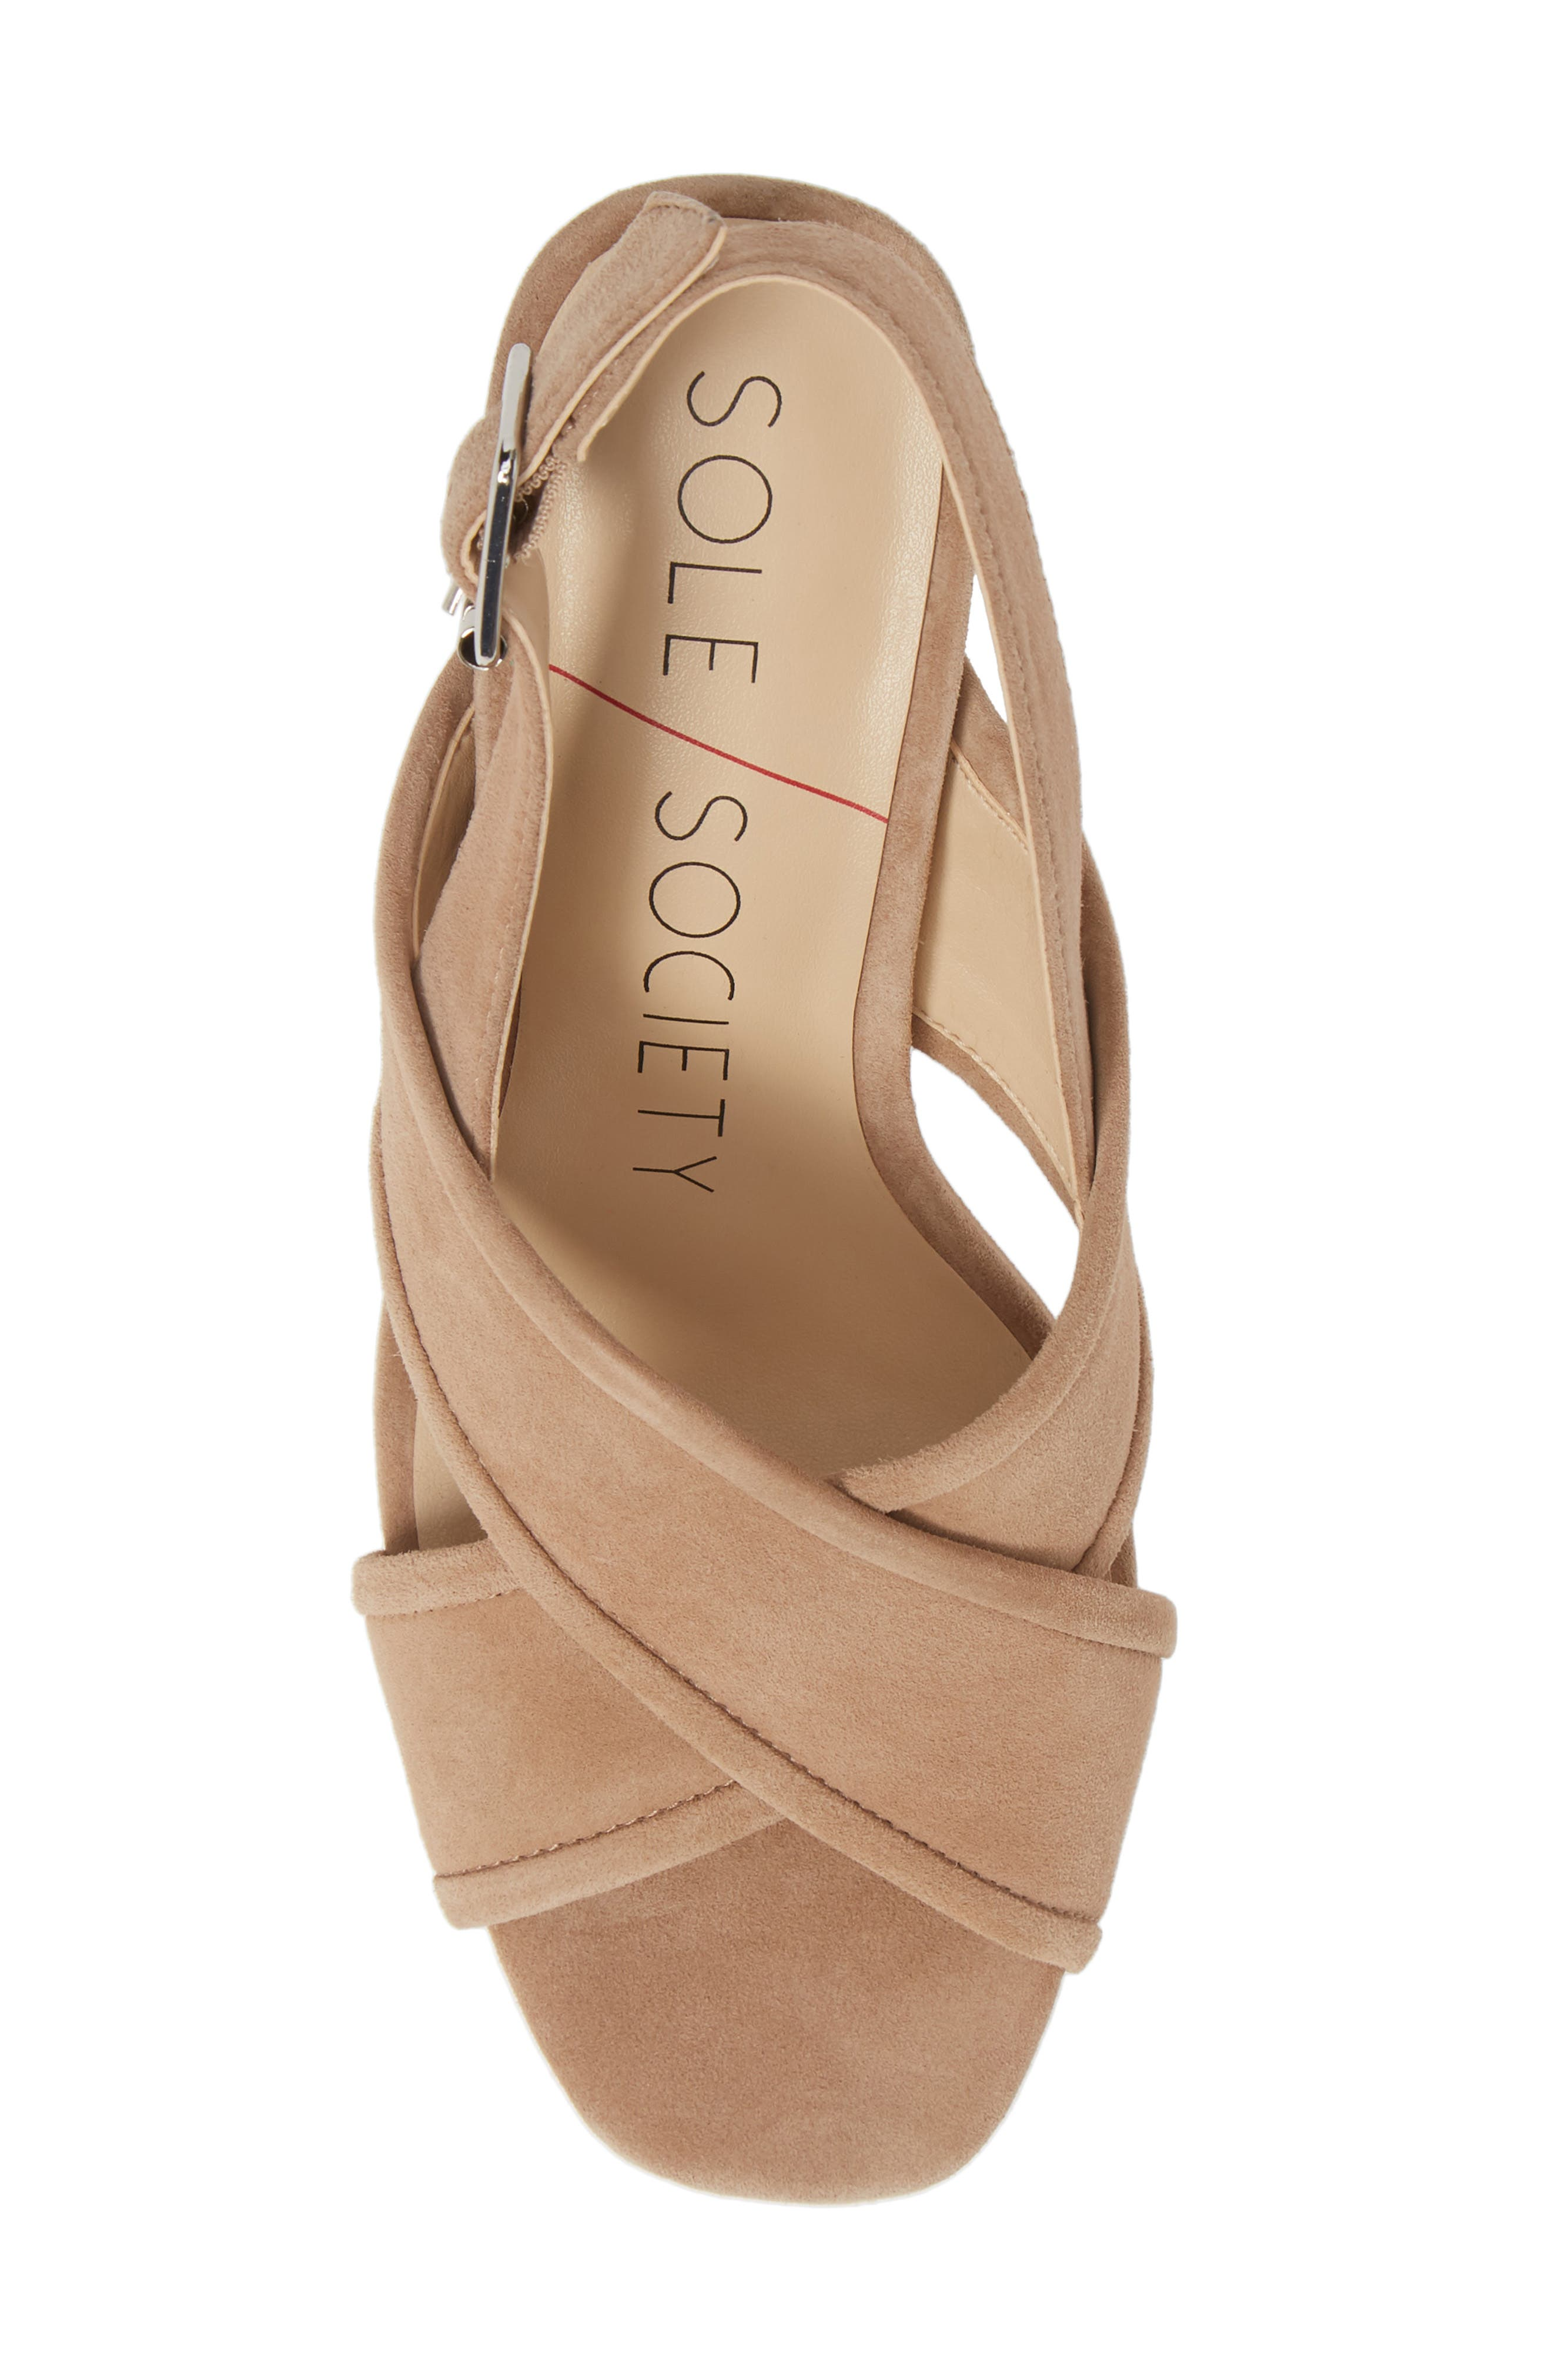 SOLE SOCIETY, Joree Slingback Sandal, Alternate thumbnail 5, color, DUSTED TAUPE SUEDE